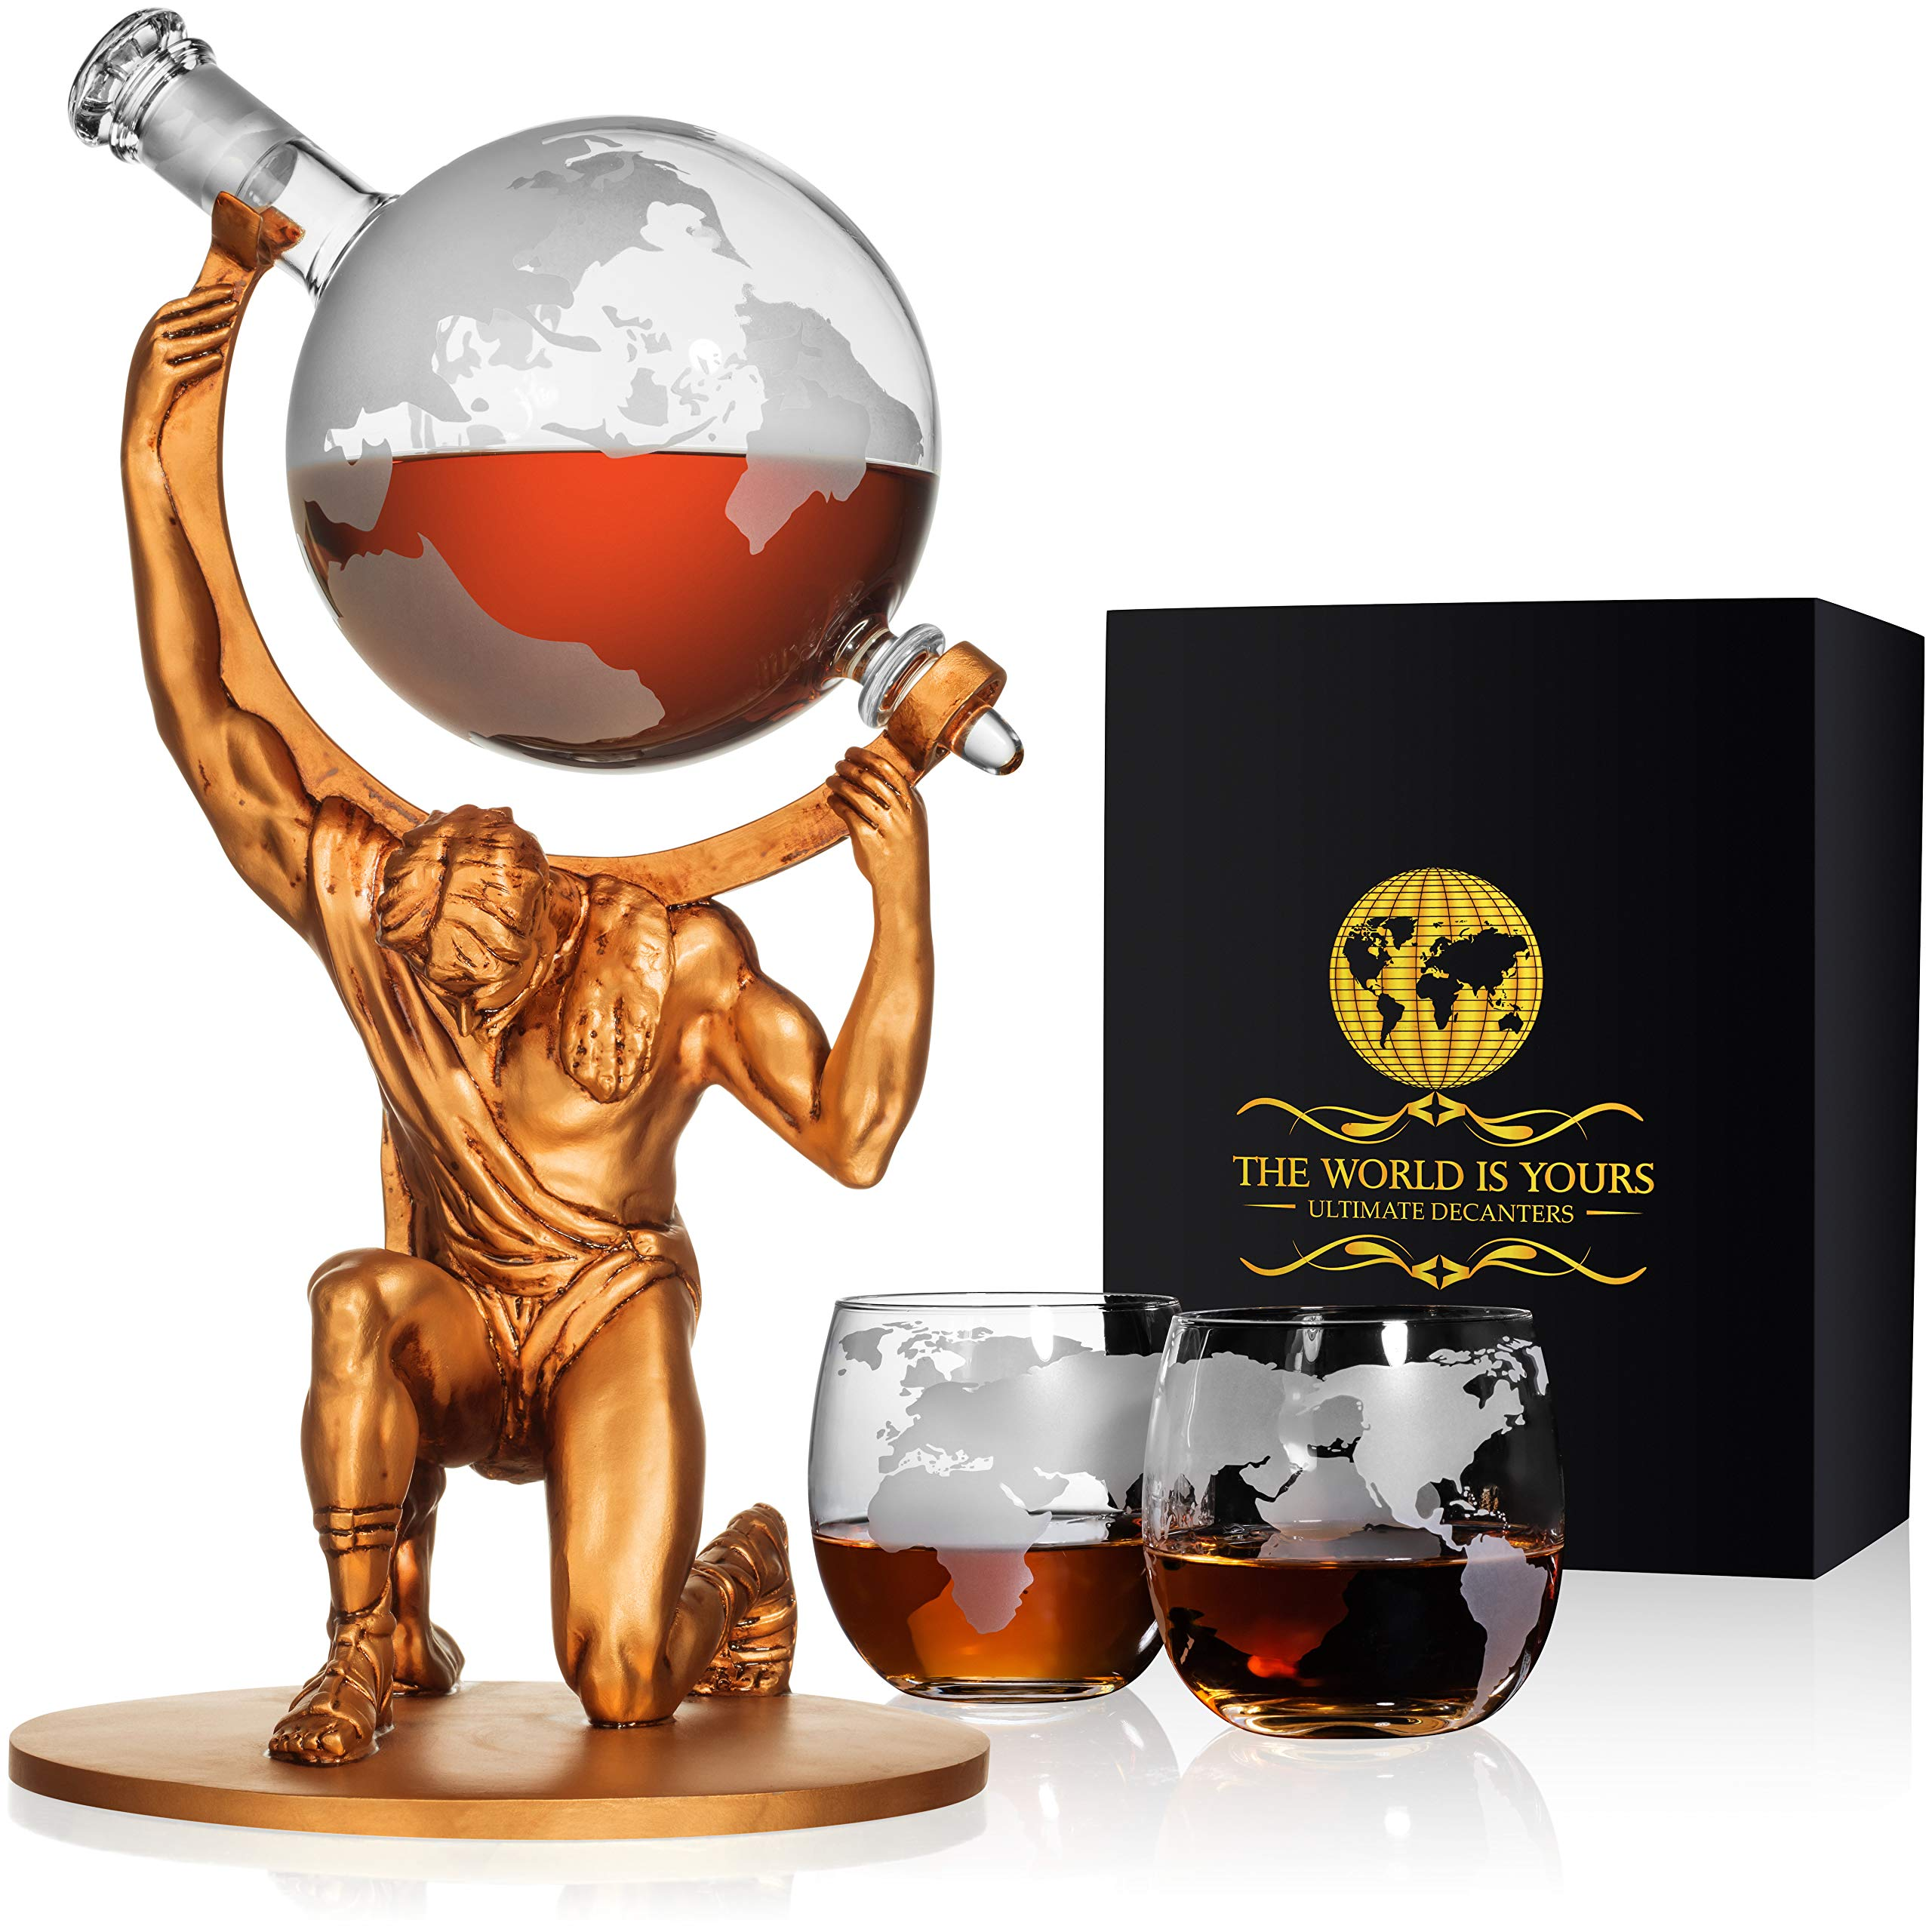 Atlas Man Whiskey Decanter Globe Set - With 2 Etched Globe Whiskey Glasses - For Whiskey, Scotch, Bourbon, Cognac and Brandy - 1000ml by NatureWorks (Image #1)